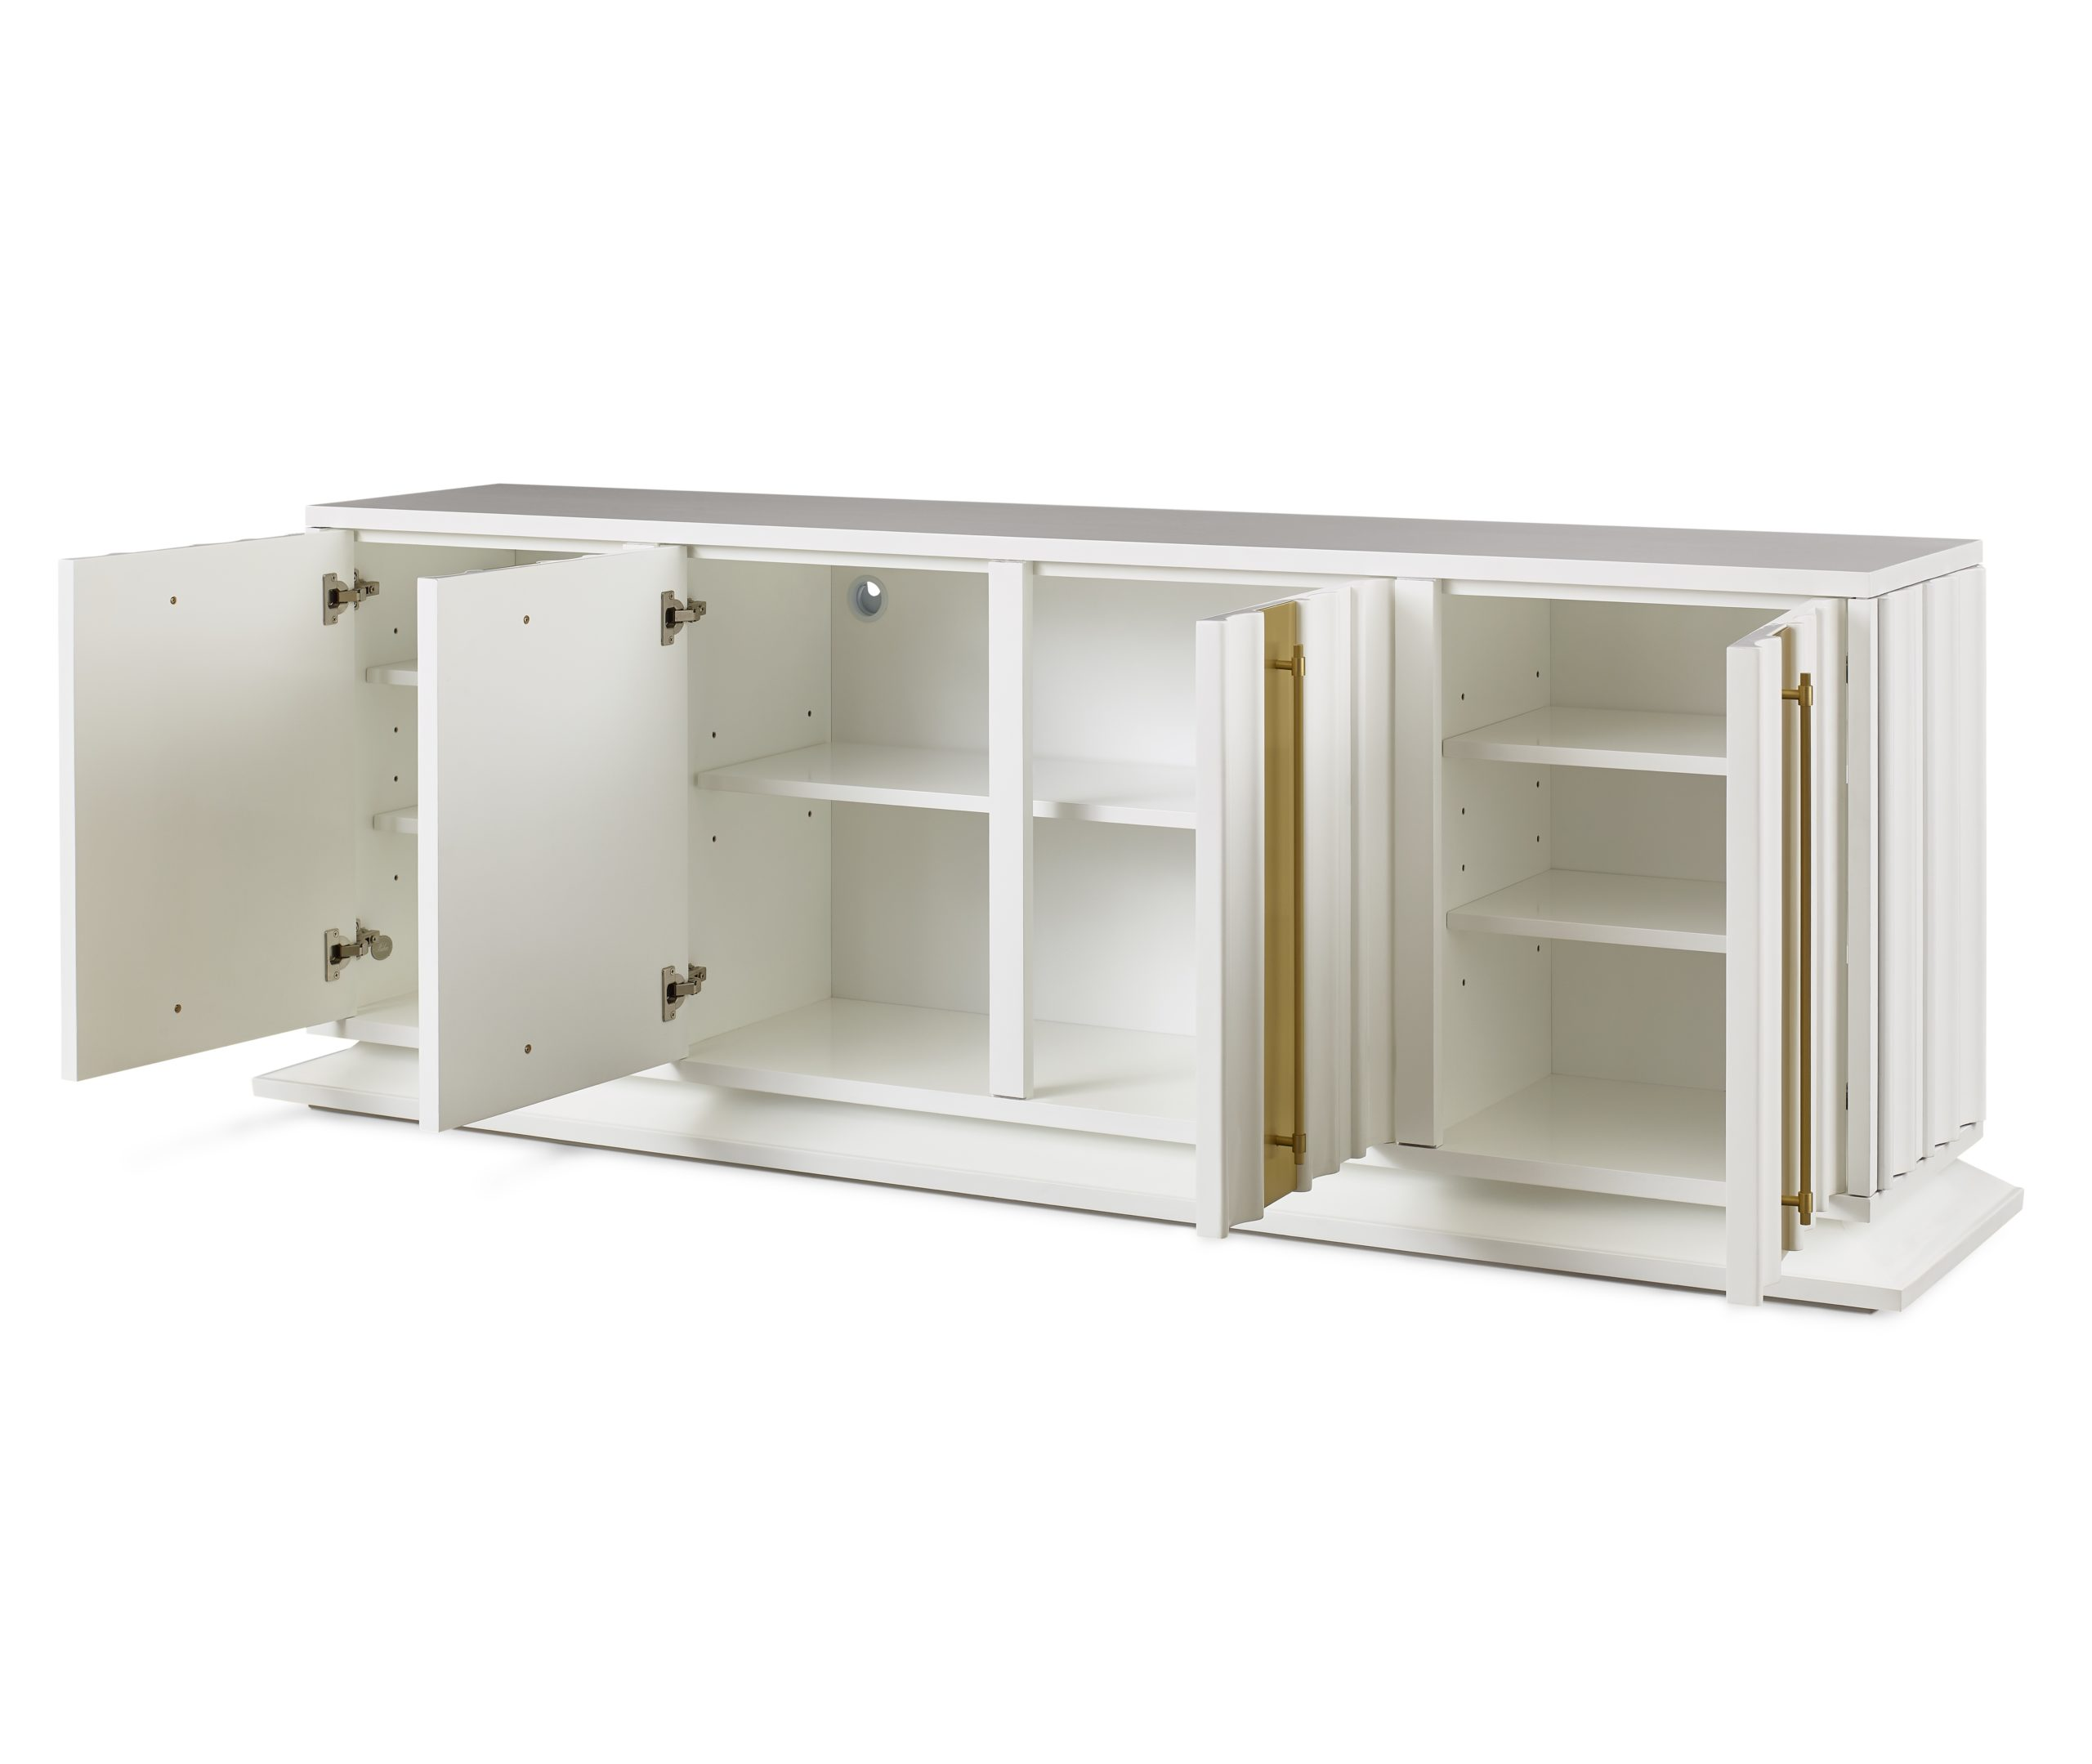 Baker_products_WNWN_cascade_credenza_BAA3283_OPEN-scaled-1